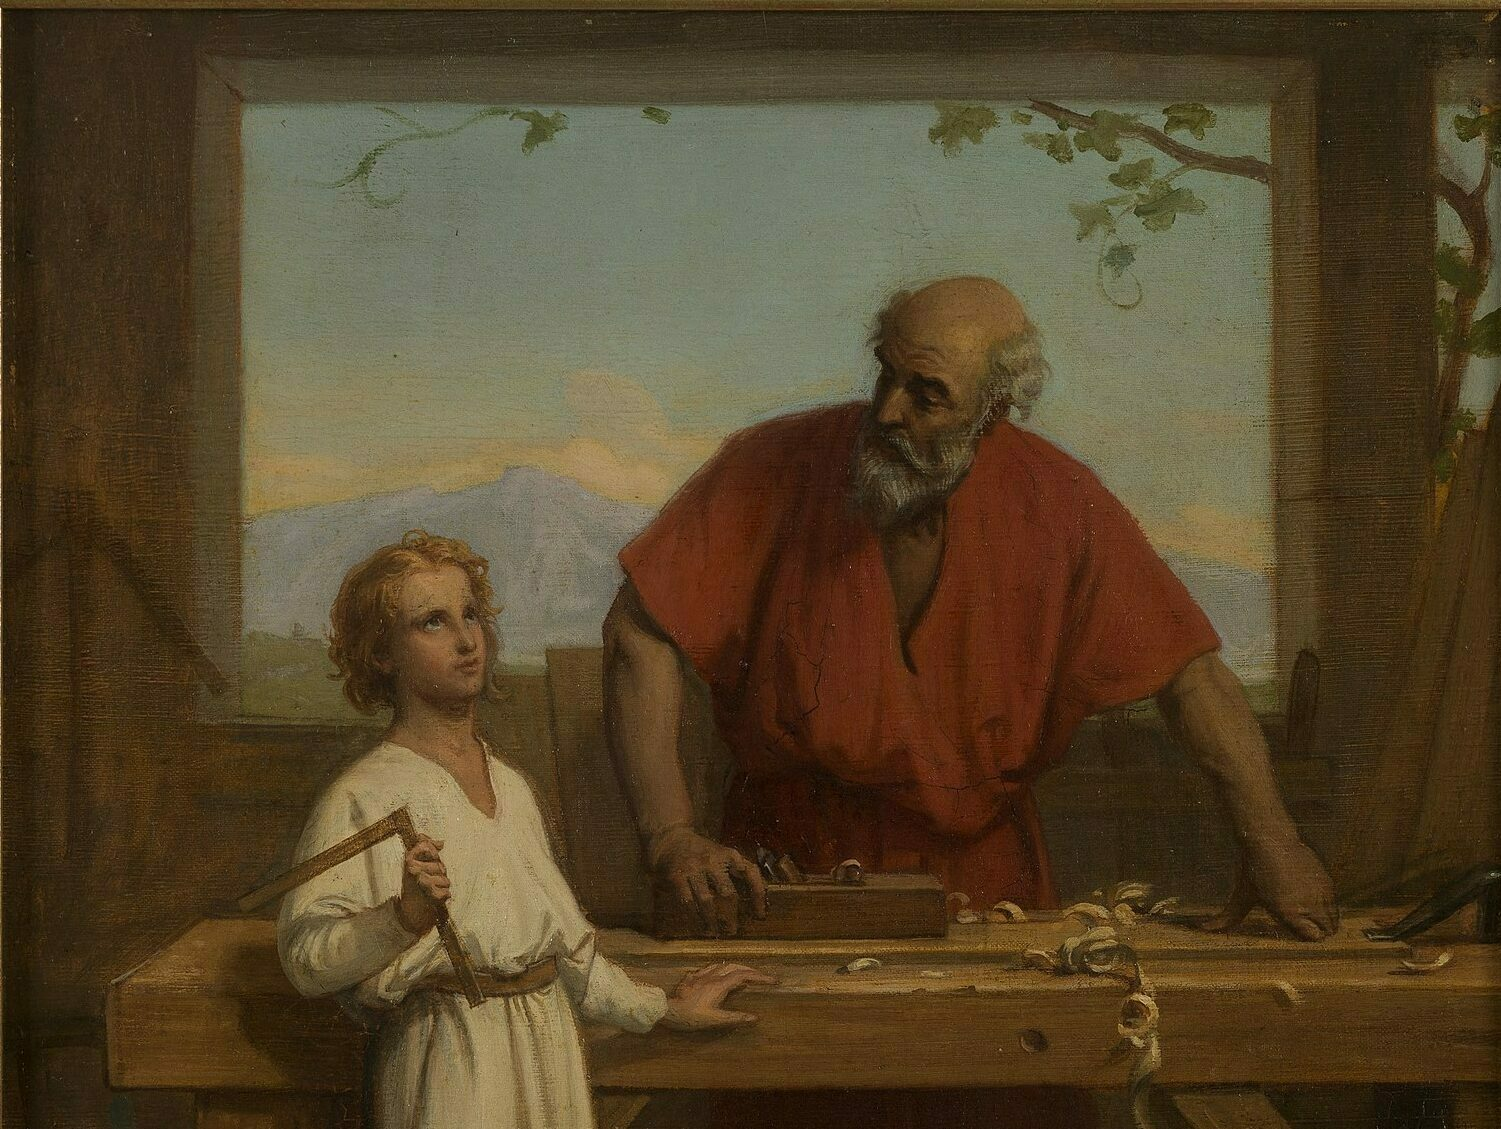 Pope Francis on St. Joseph and Authentic Masculinity